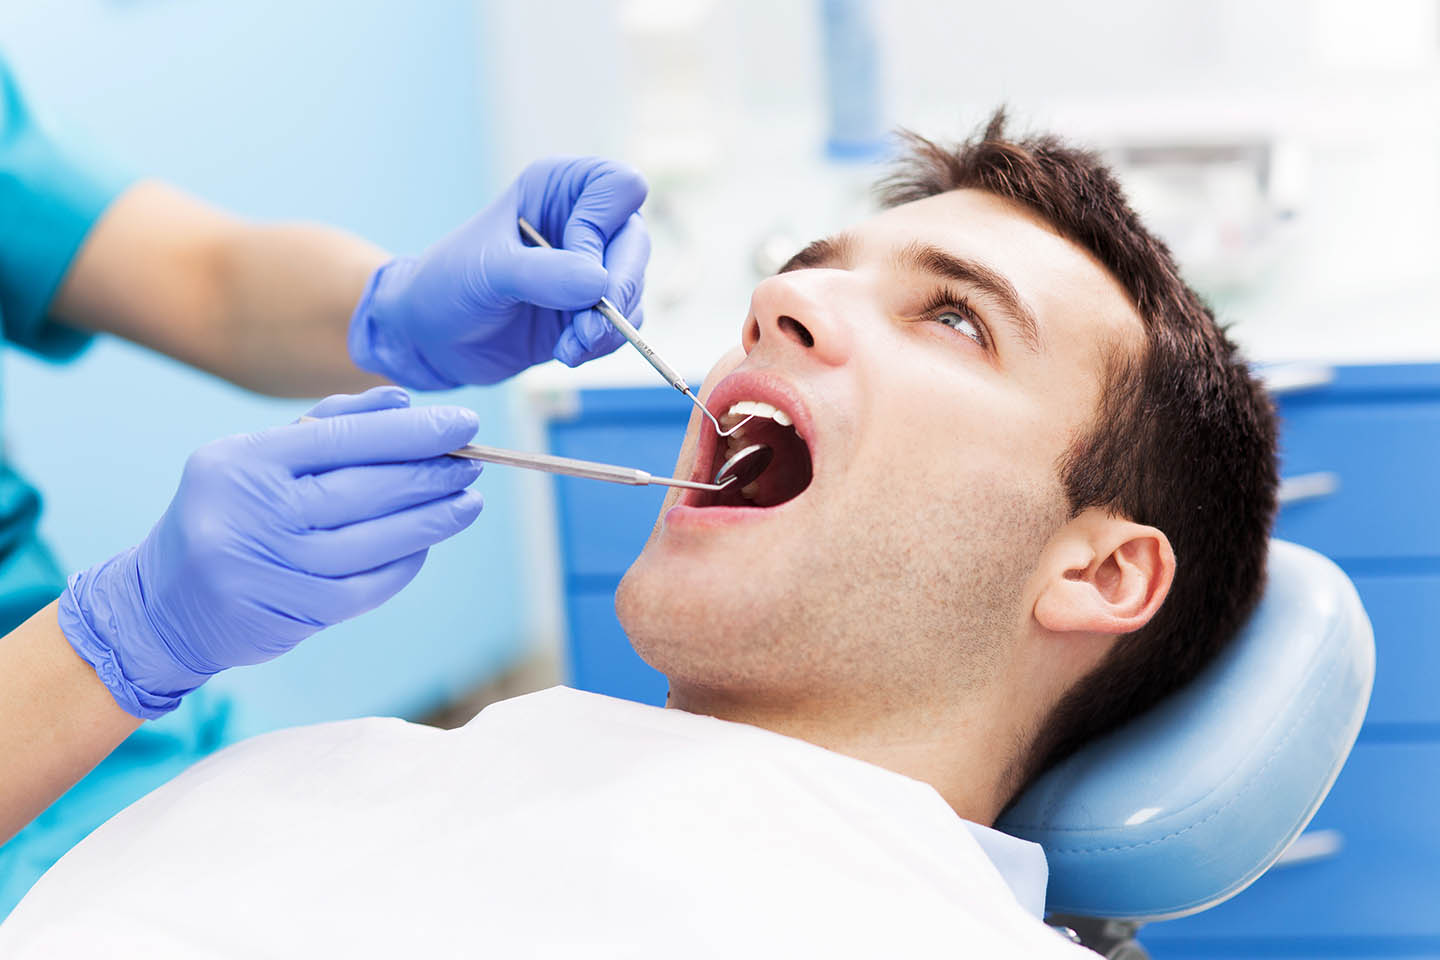 patient with dental tools in mouth